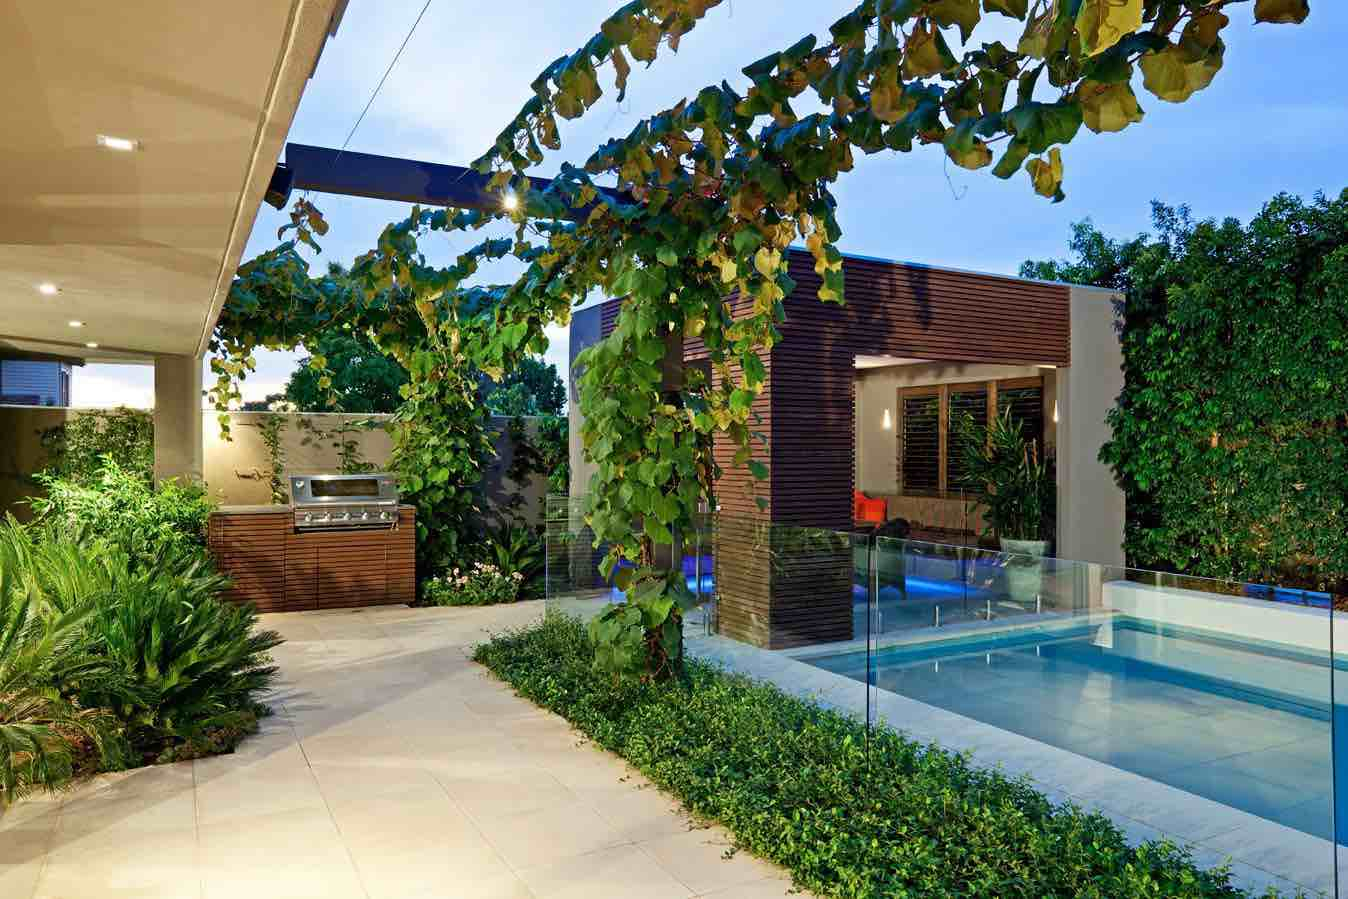 Small Backyard Design 41 backyard design ideas for small yards | worthminer